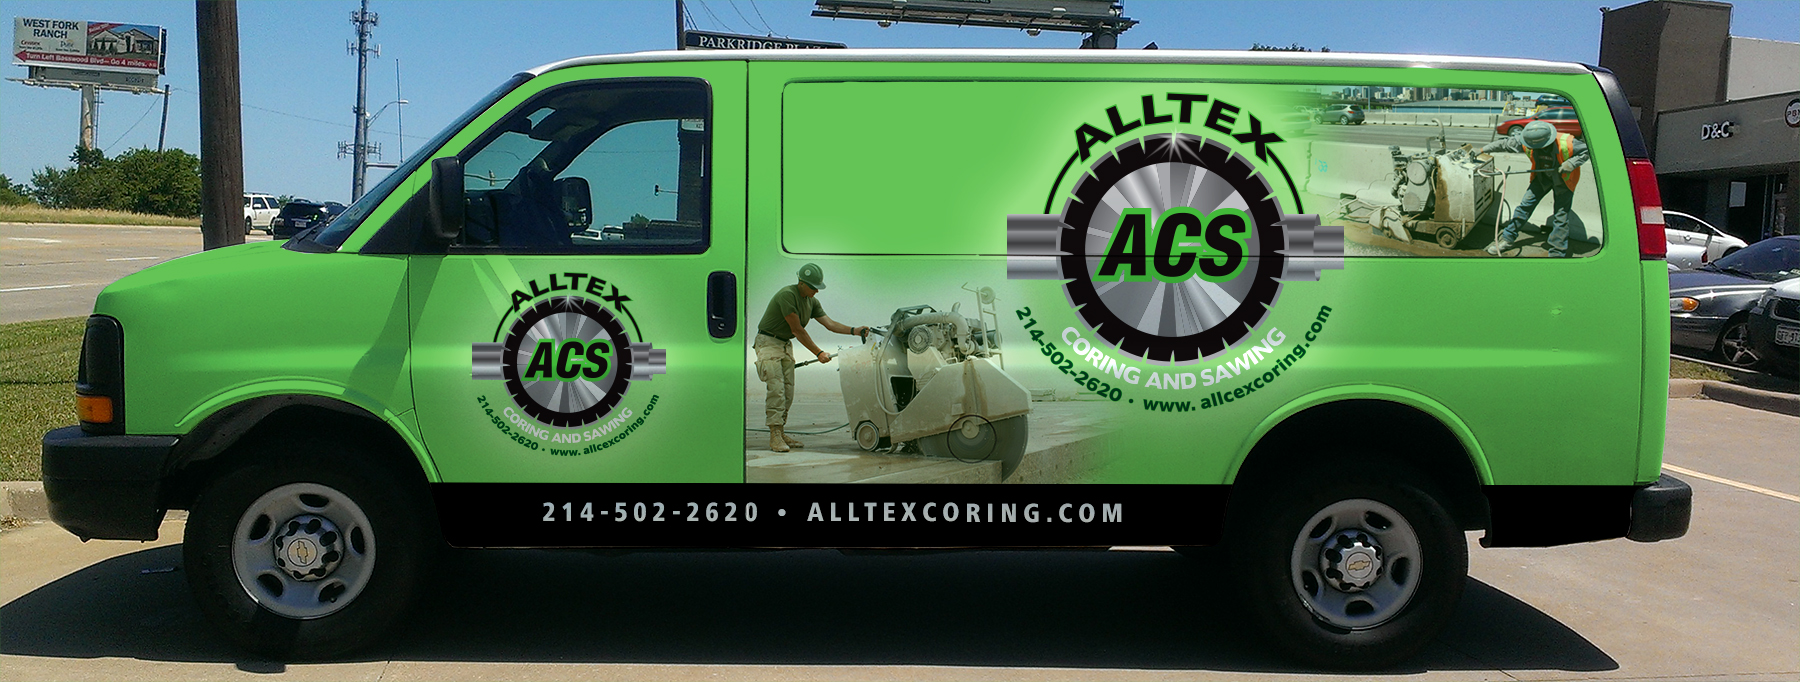 Alltex Coring & Sawing core drilling